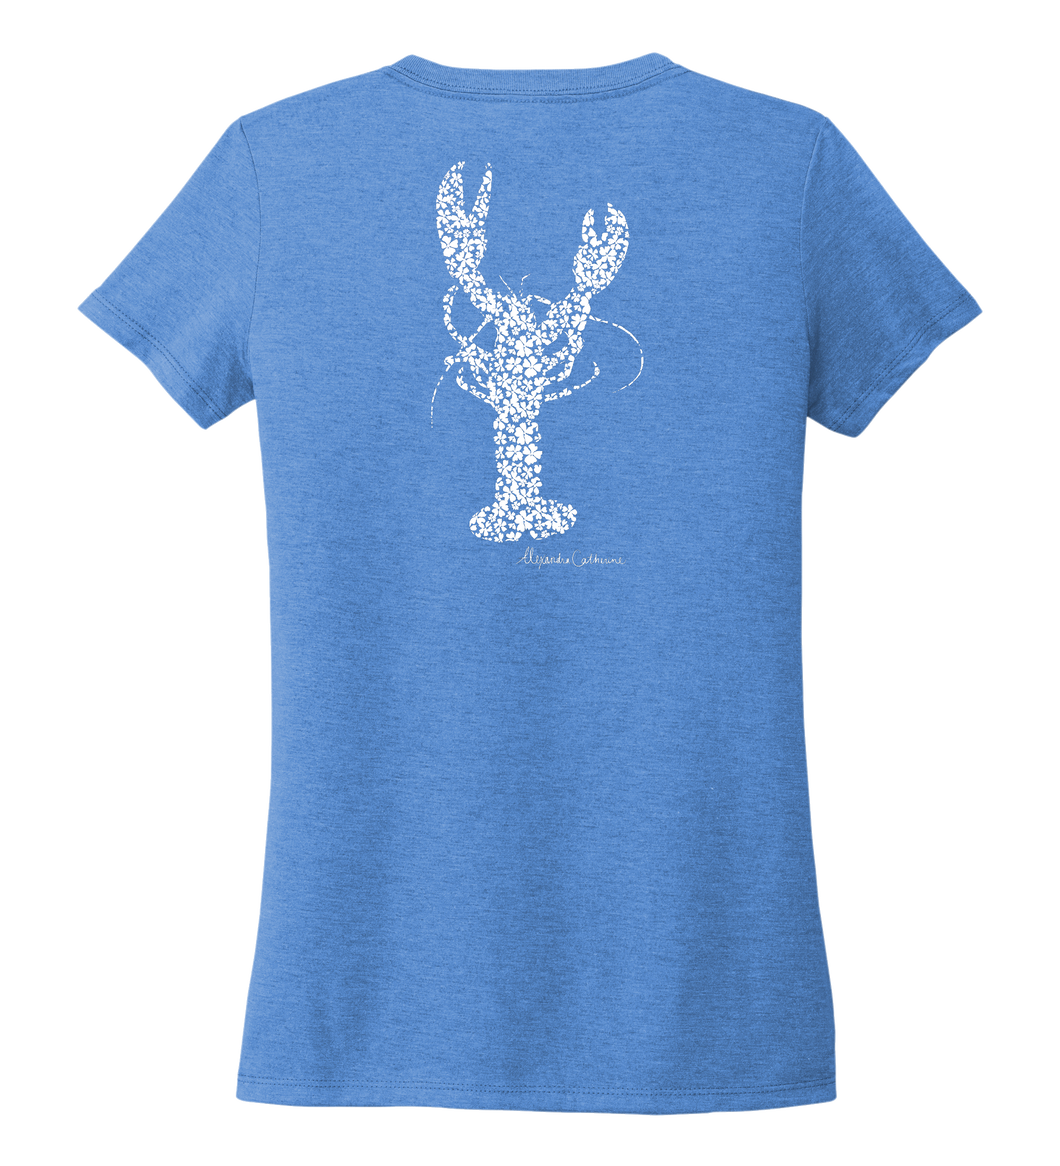 Alexandra Catherine, Fleur White Lobster, Women's V-neck T-shirt in Sky Blue